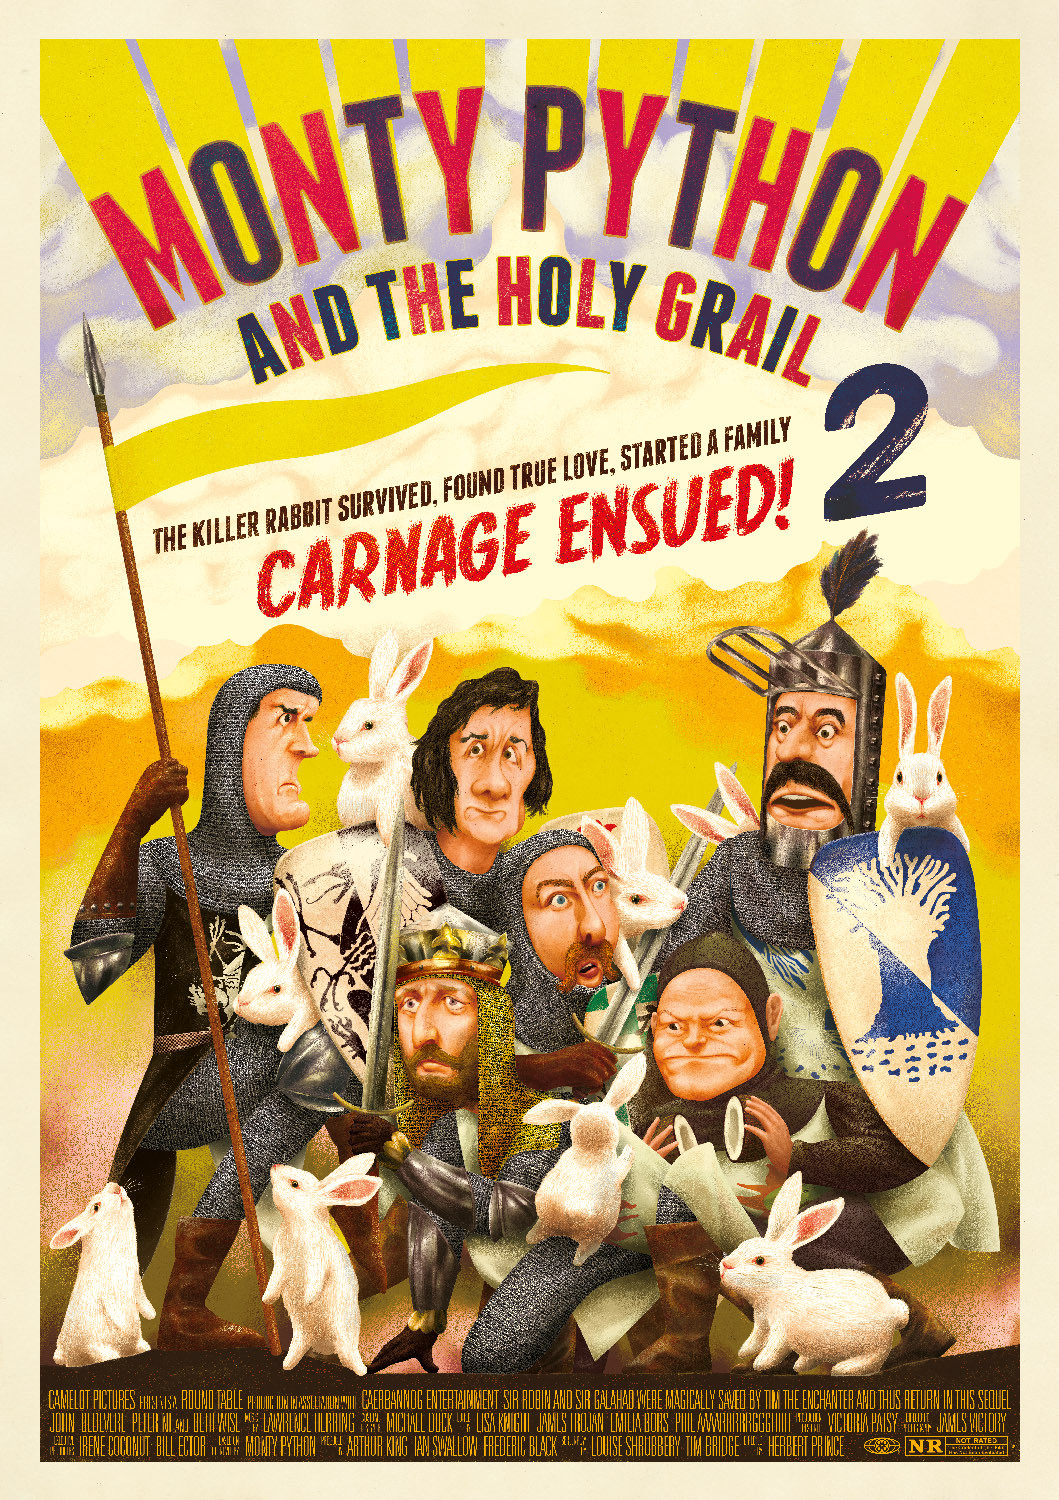 Monty Python And The Holy Grail #8